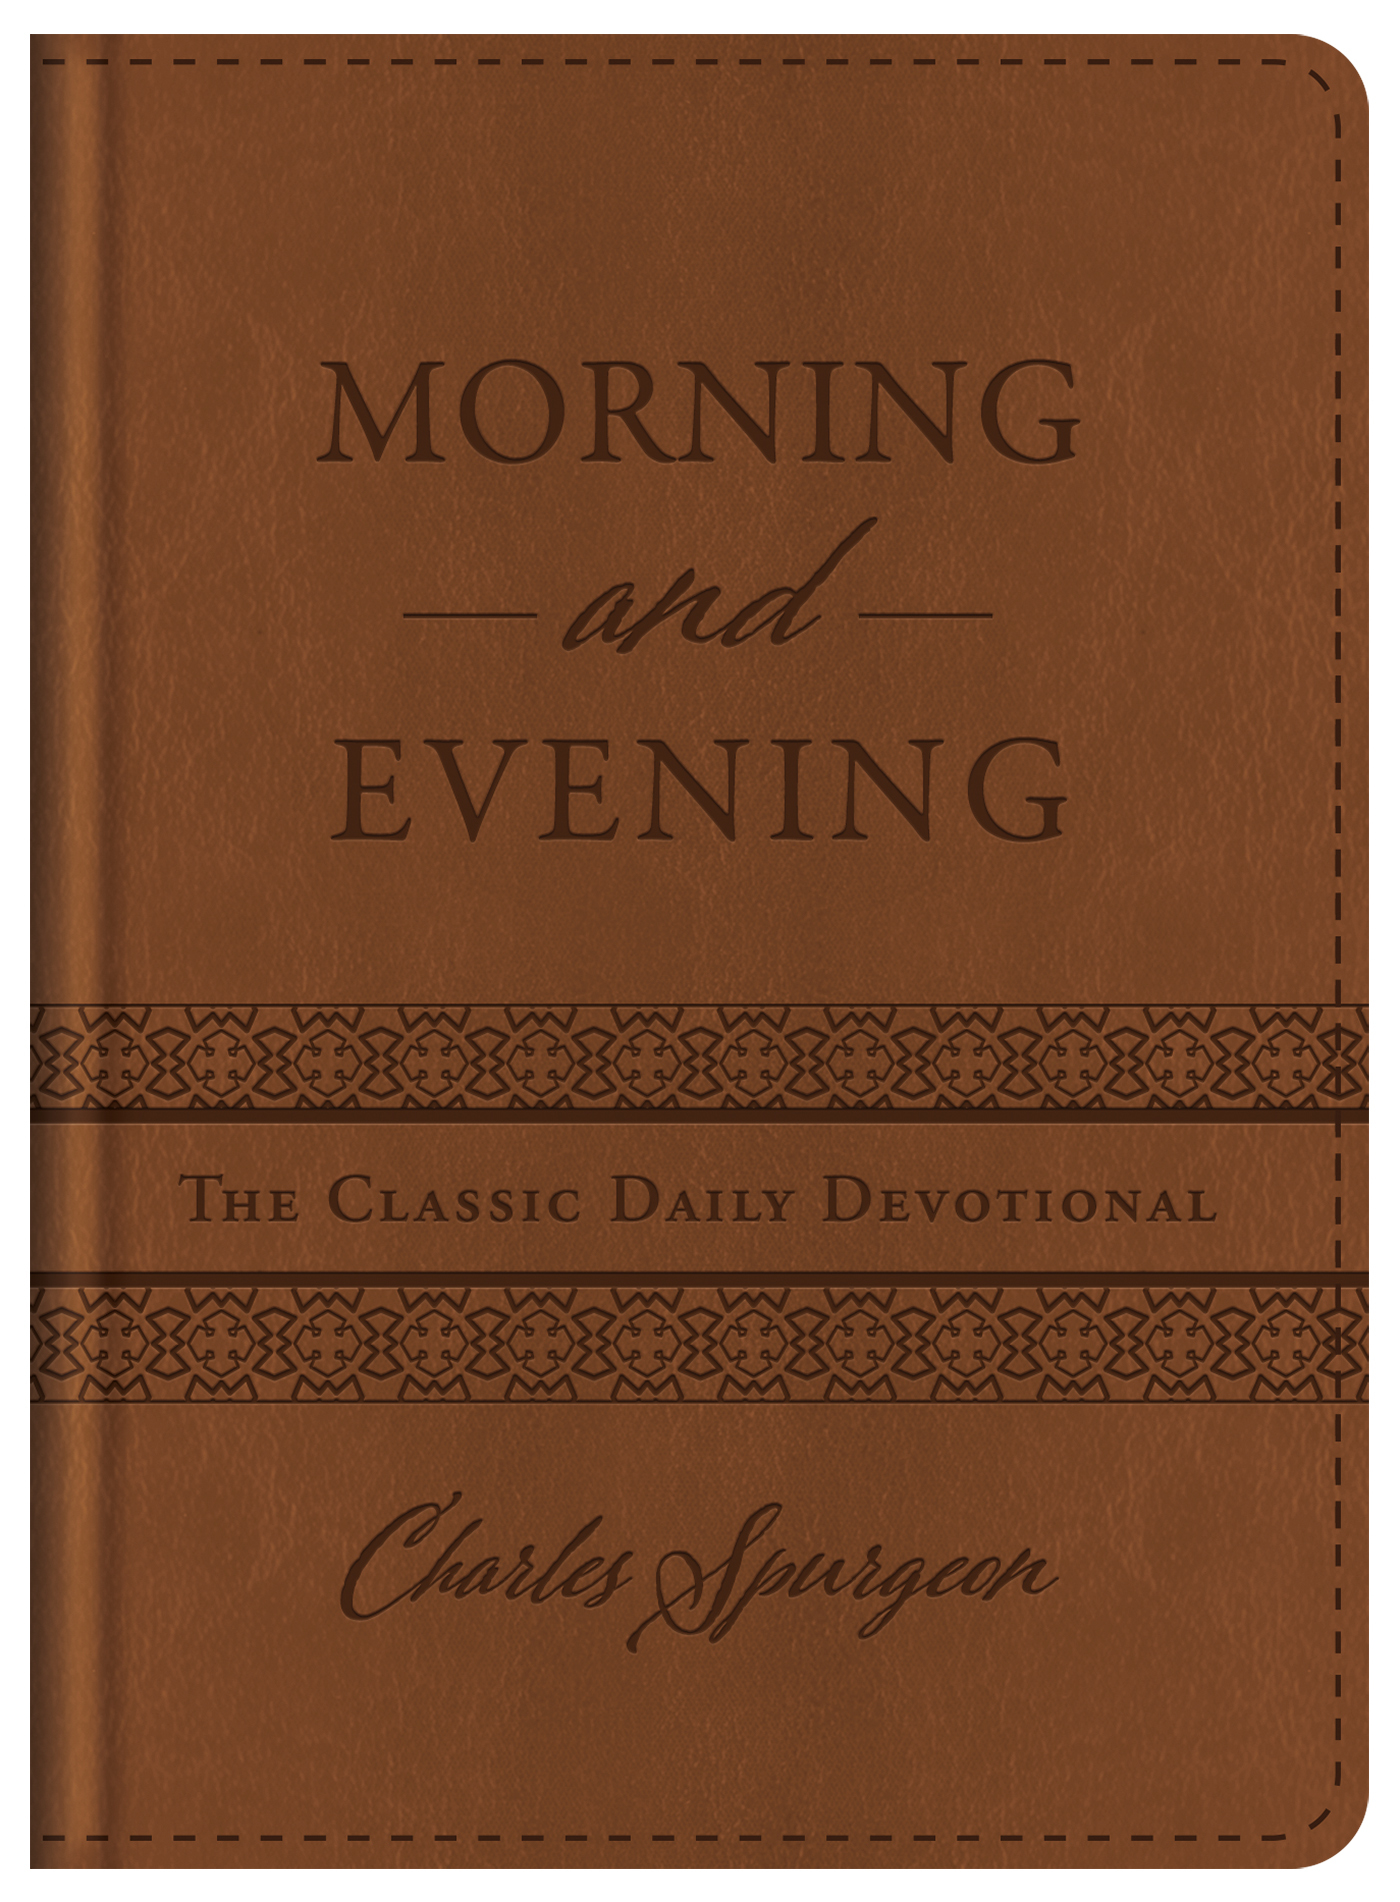 Morning and Evening: The Classic Daily Devotional